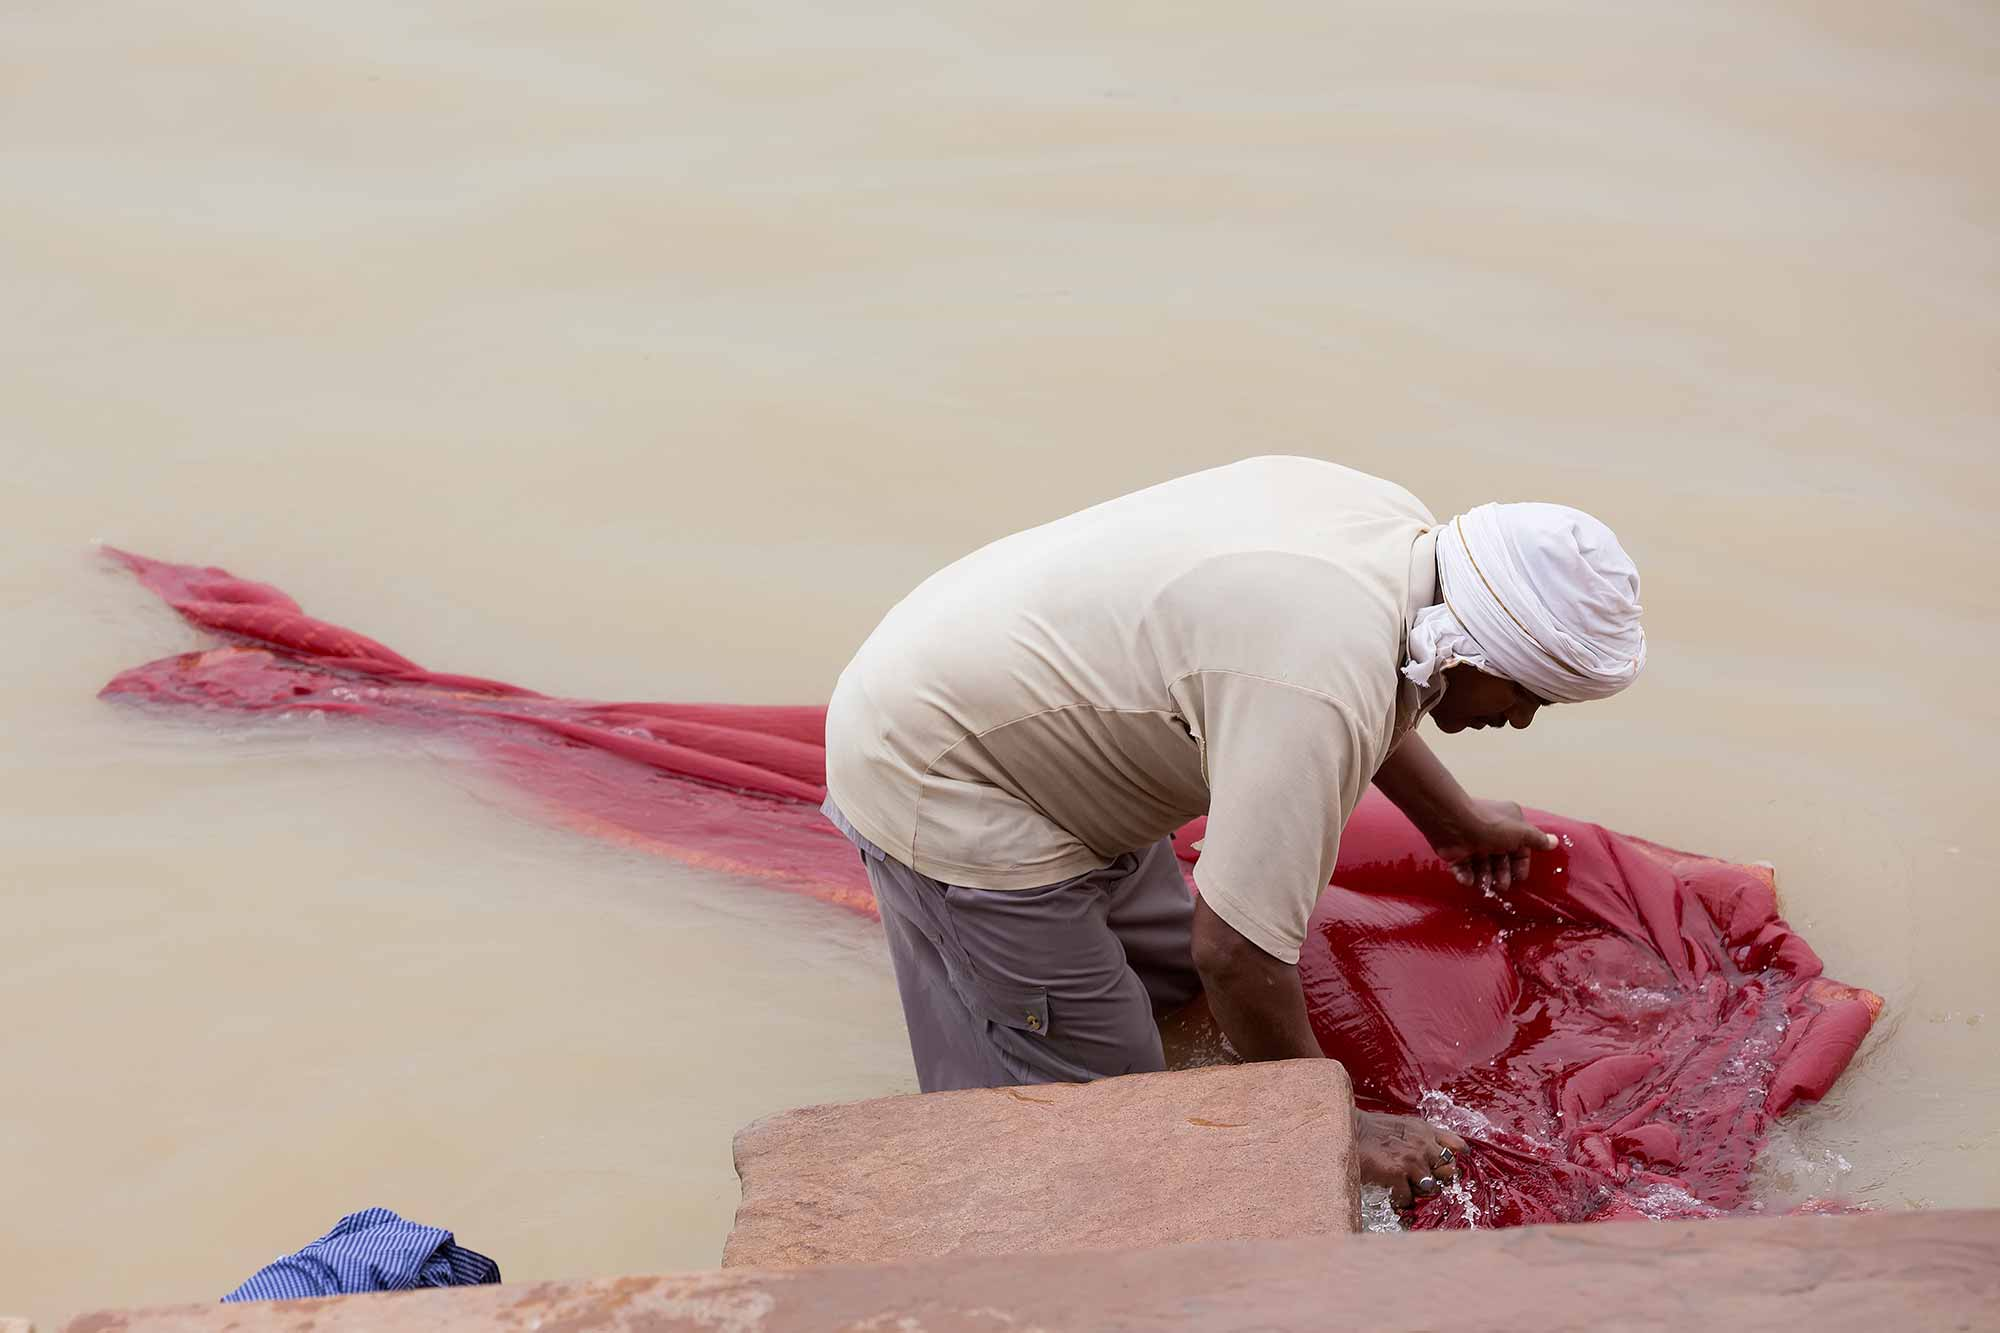 man-washing-clothes-ghats-varanasi-india